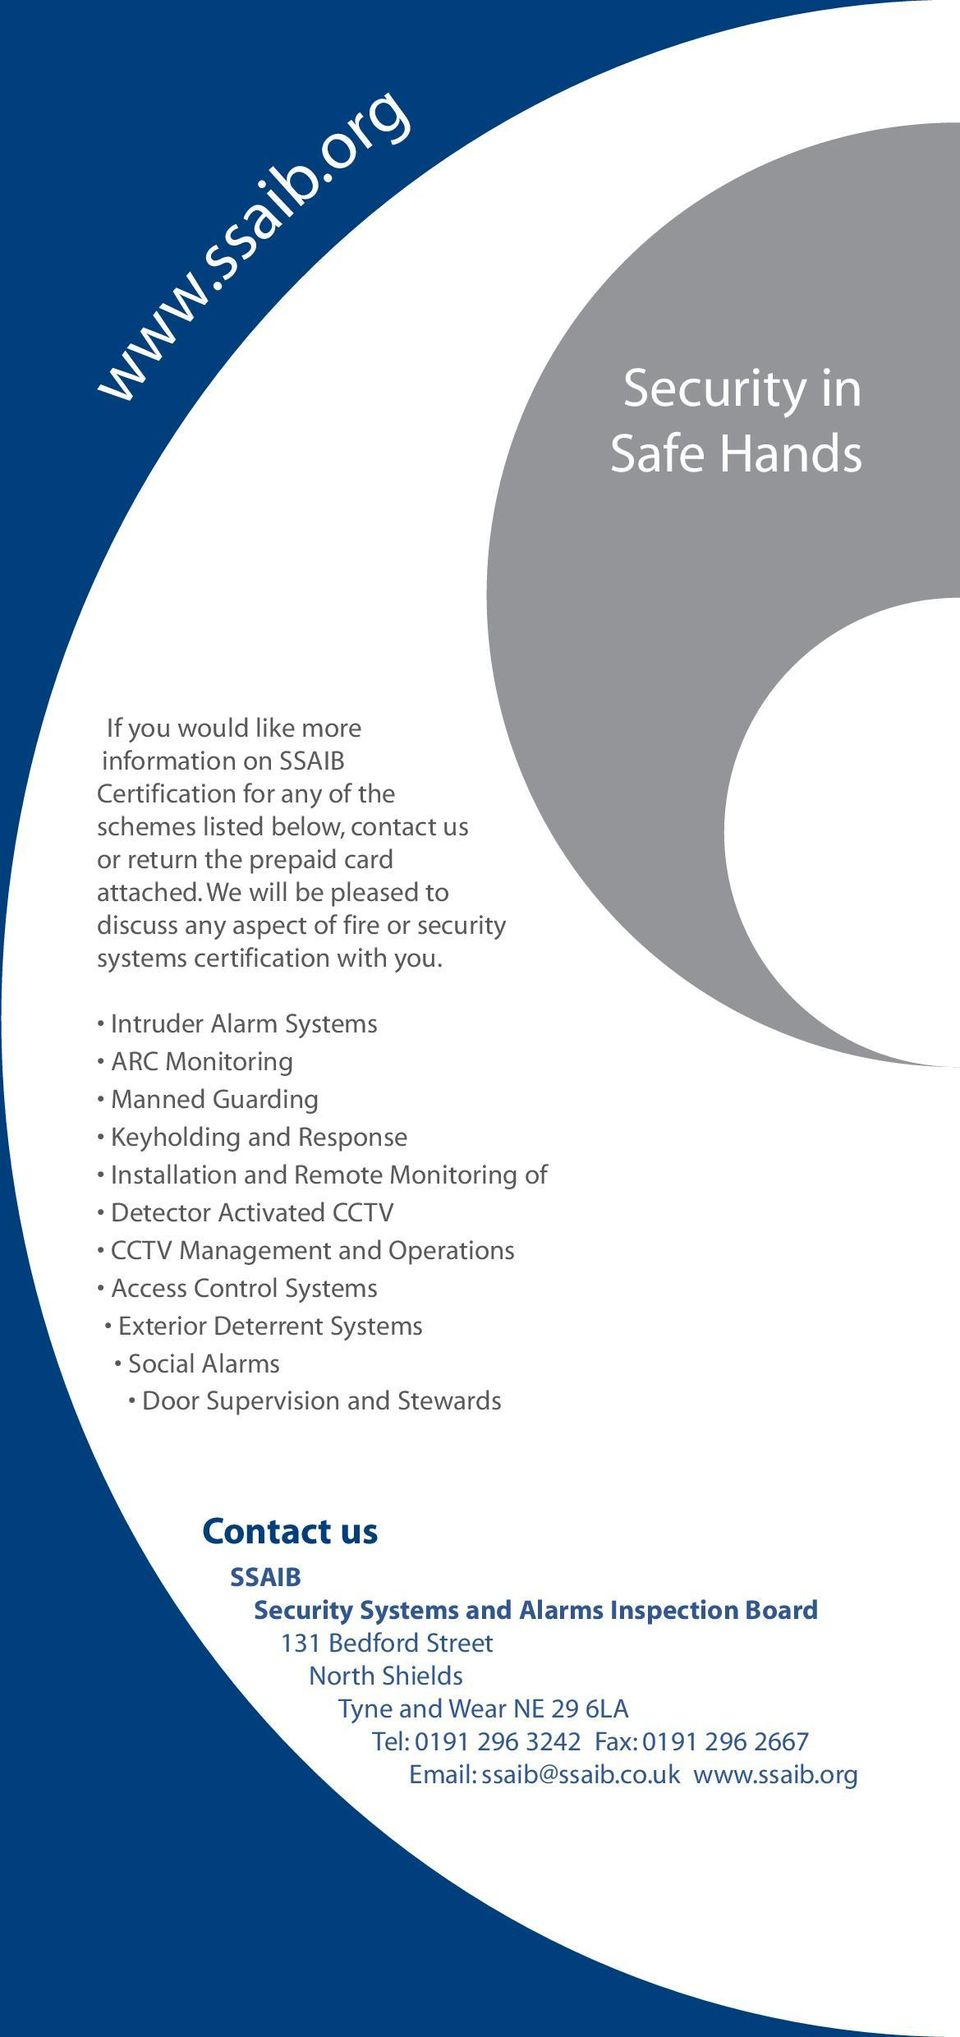 Intruder Alarm Systems ARC Monitoring Manned Guarding Keyholding and Response Installation and Remote Monitoring of Detector Activated CCTV CCTV Management and Operations Access